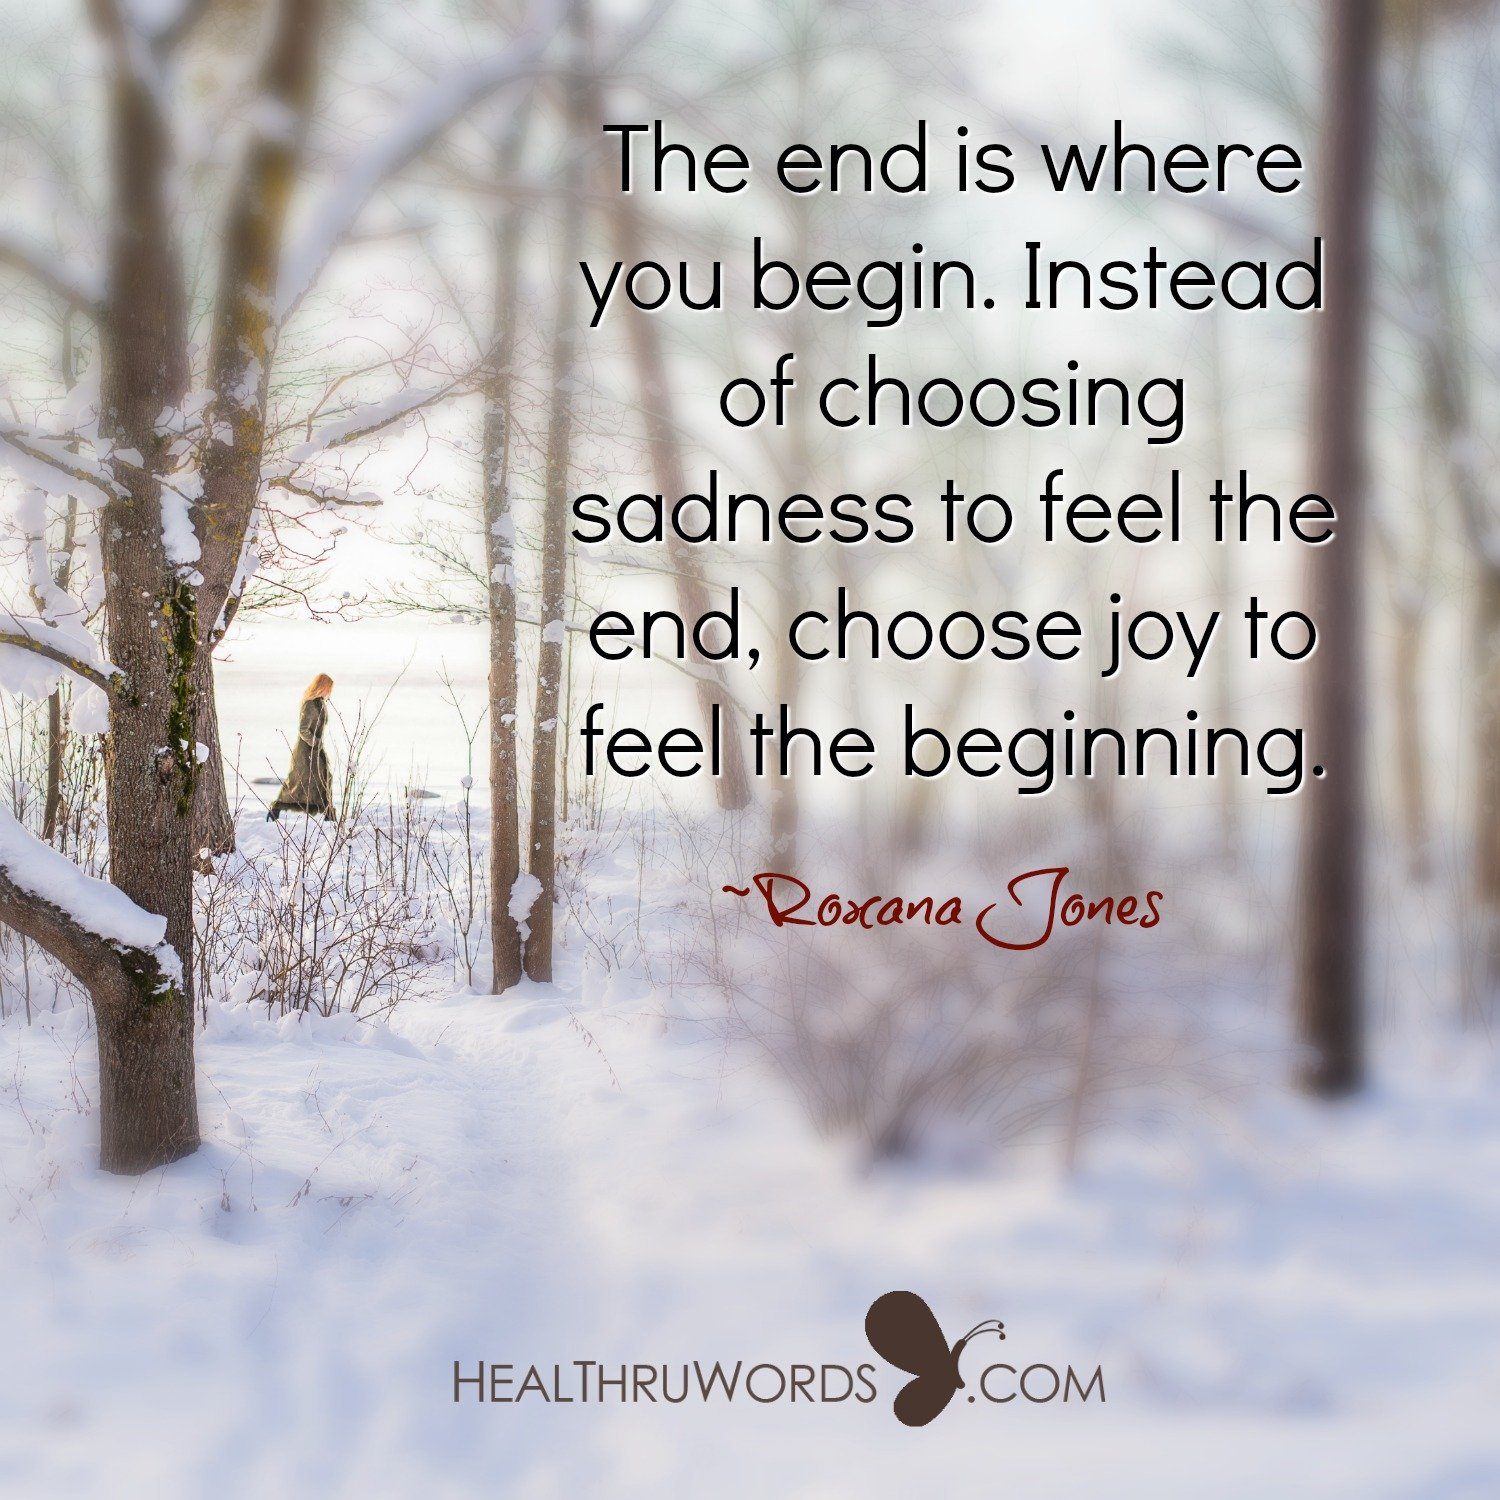 Inspirational Image: Begin